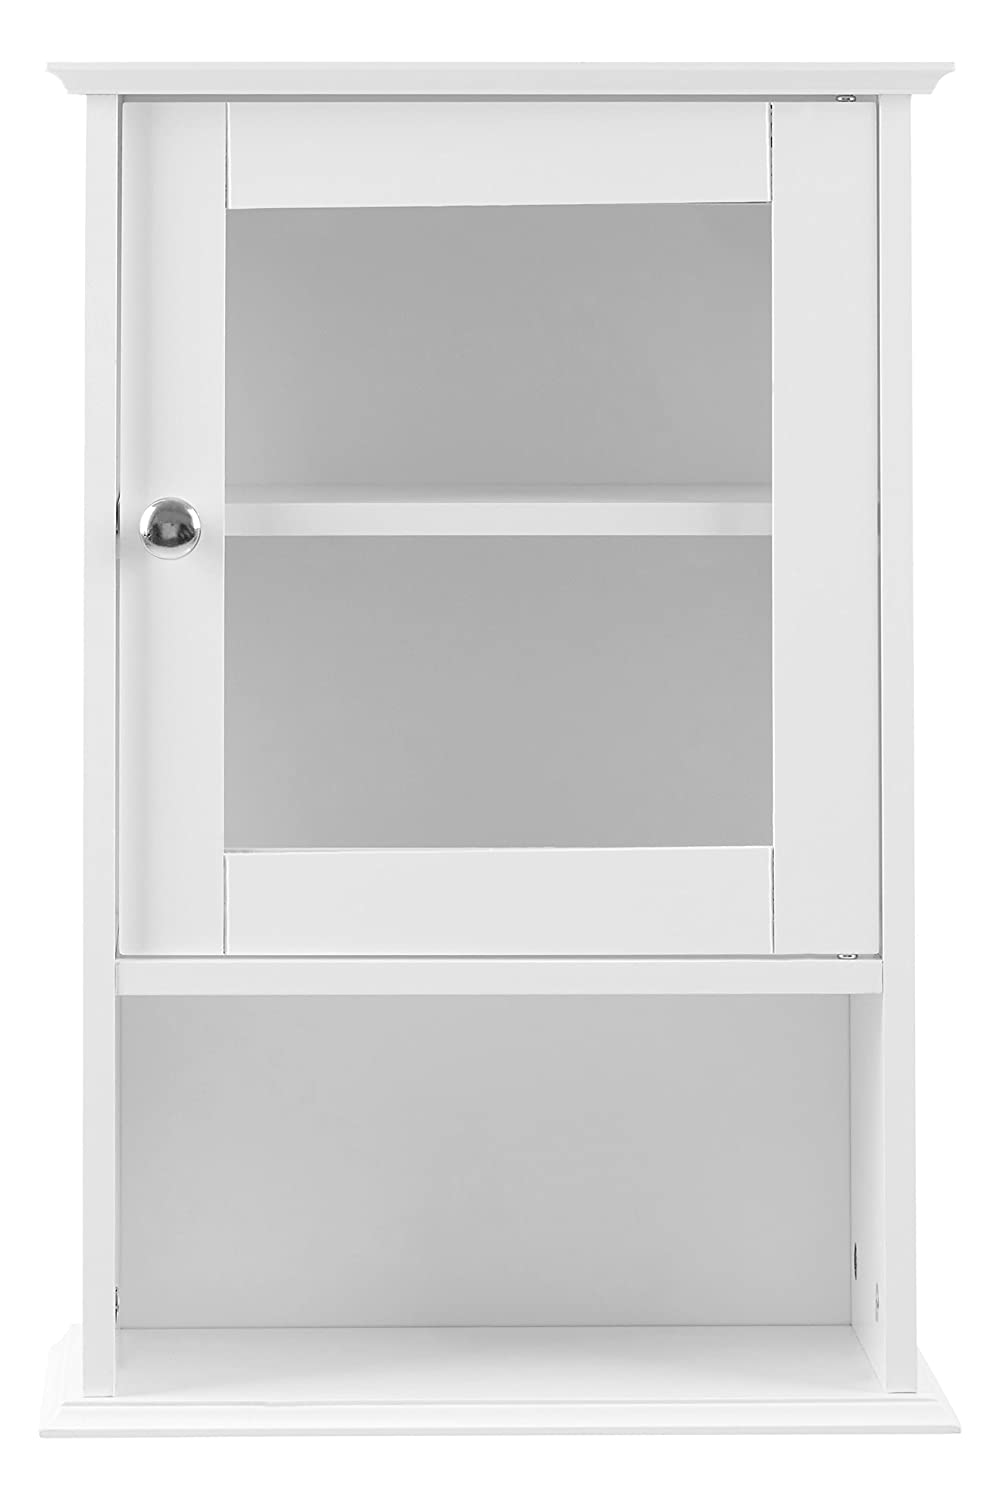 Premier Housewares Wall Cabinet with Glass Front Door and Shelf, 51 x 35 x 18 cm - White 2402057 A2980